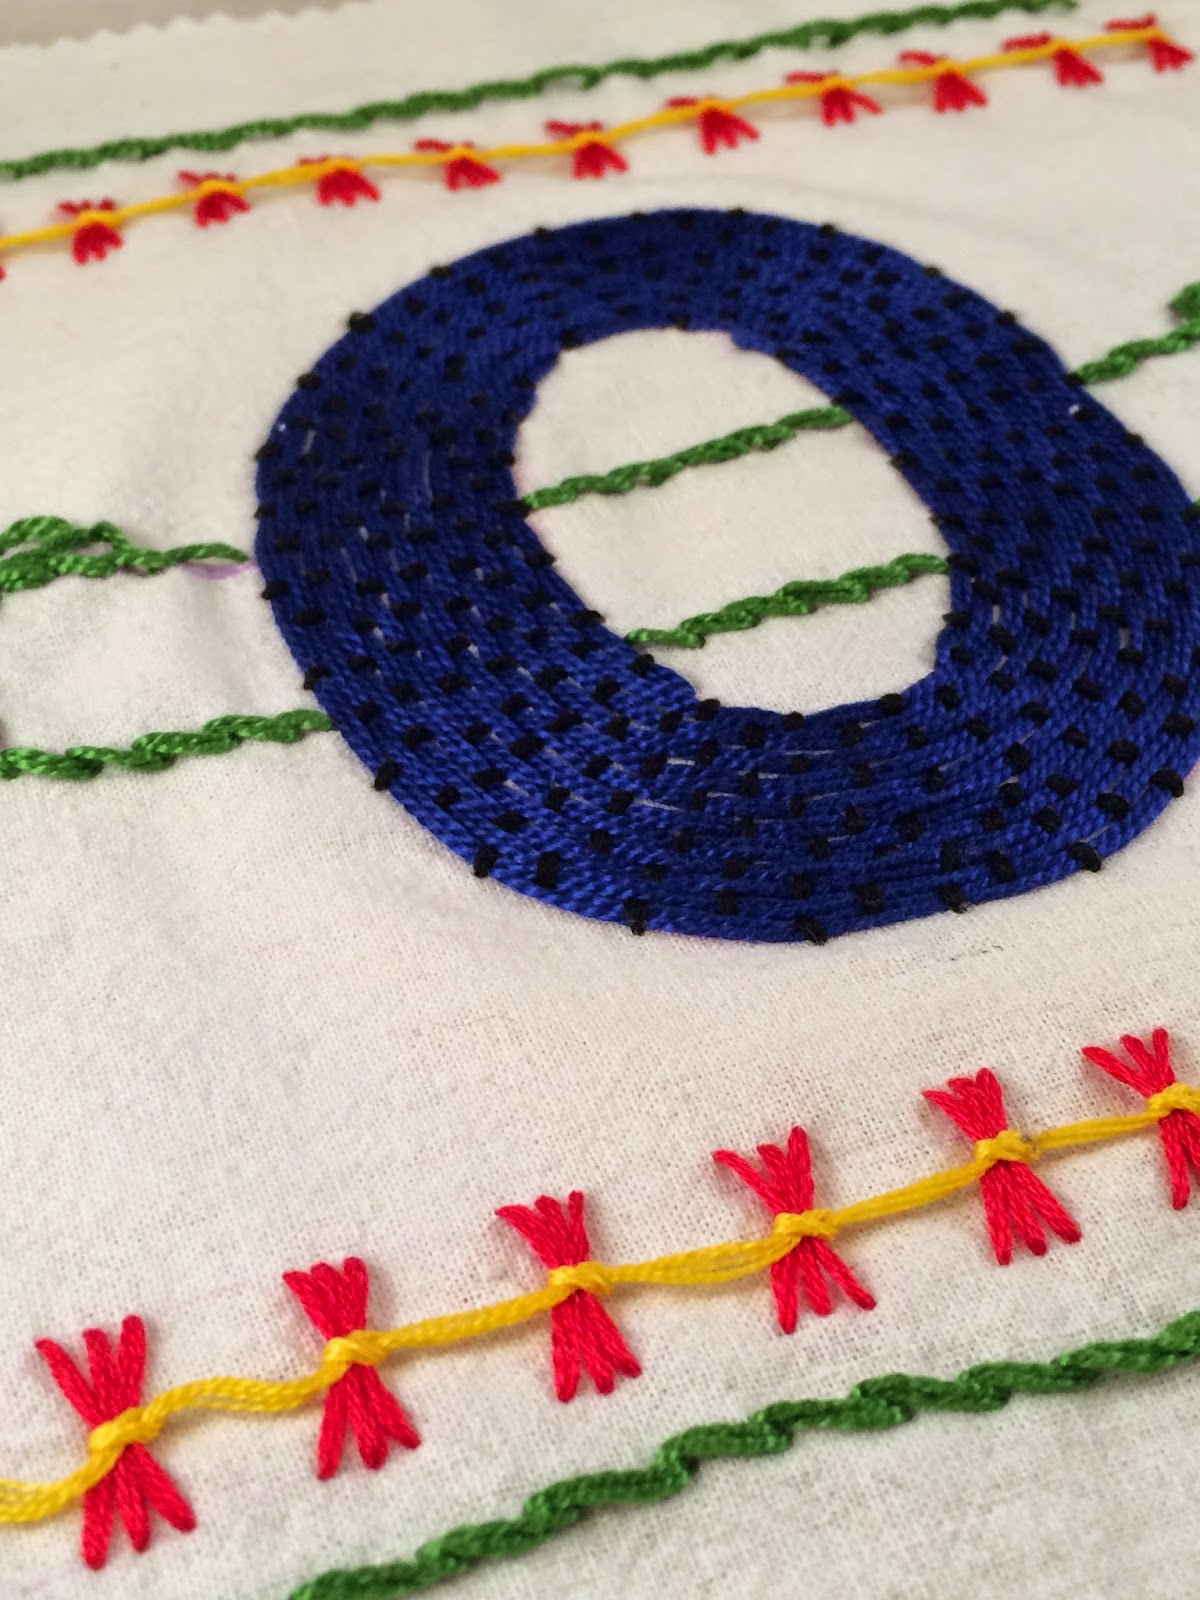 Pi embroidery